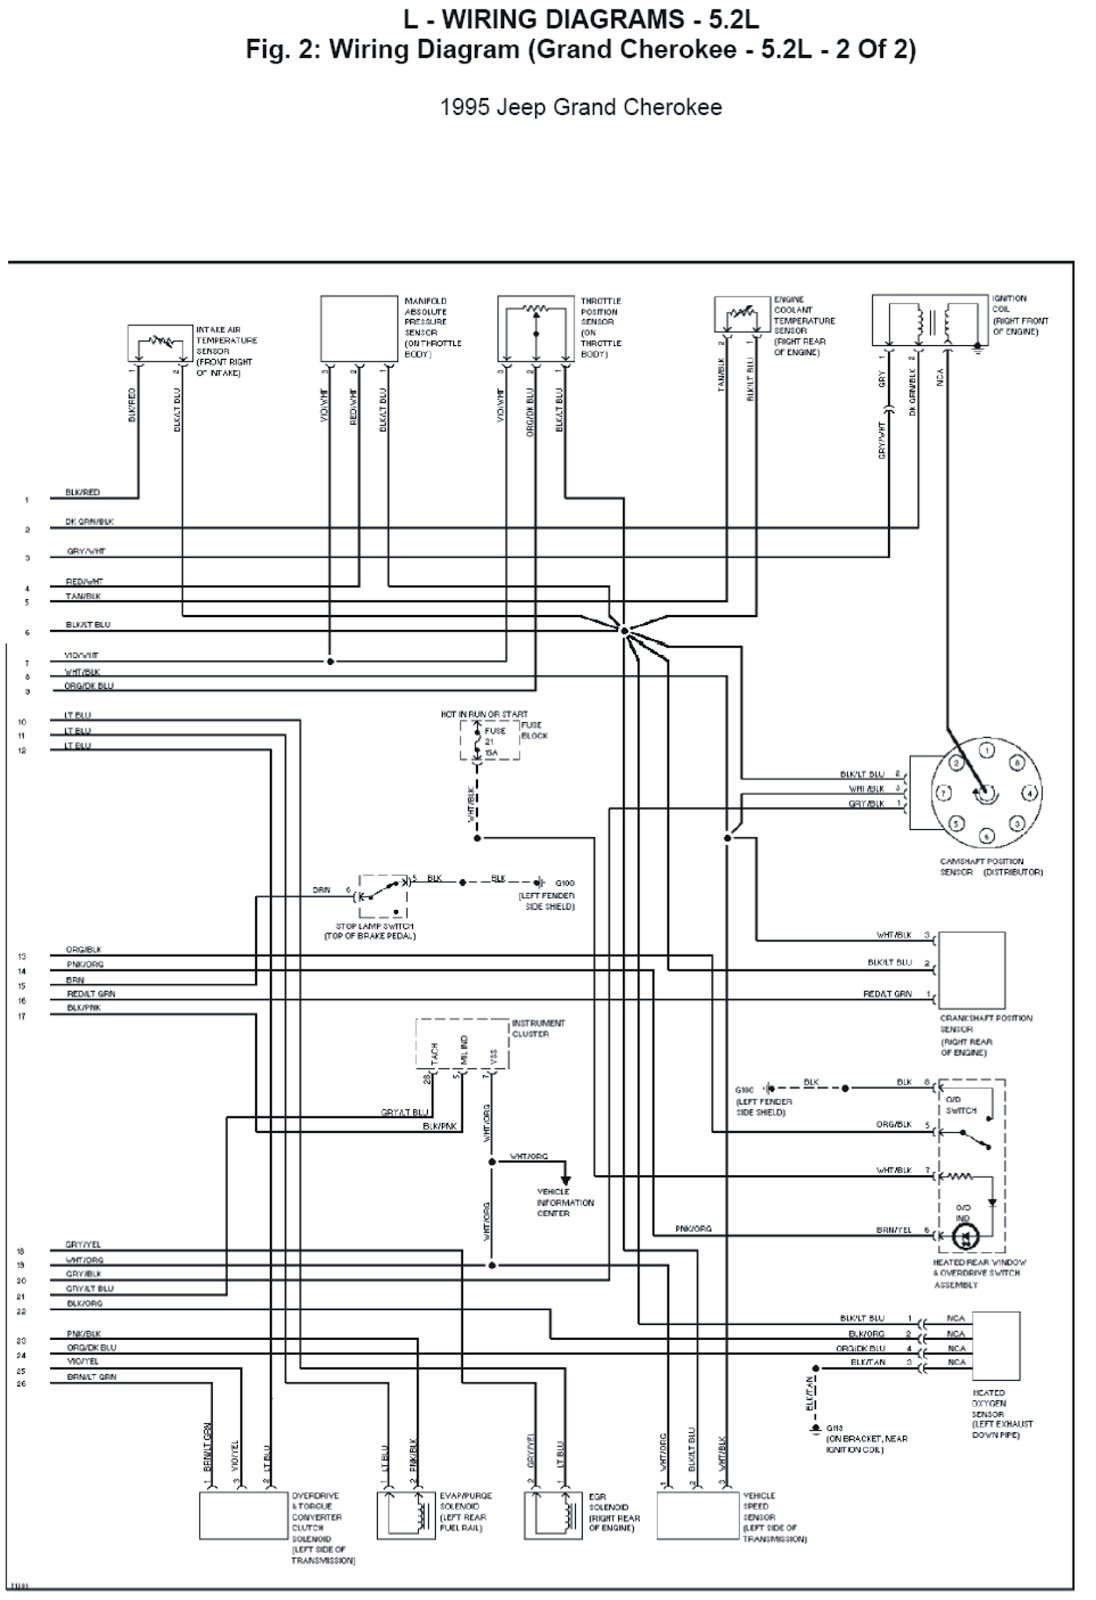 small resolution of 1995 cherokee wiring diagram 1995 jeep schematics and wiring diagrams jeep wrangler 93